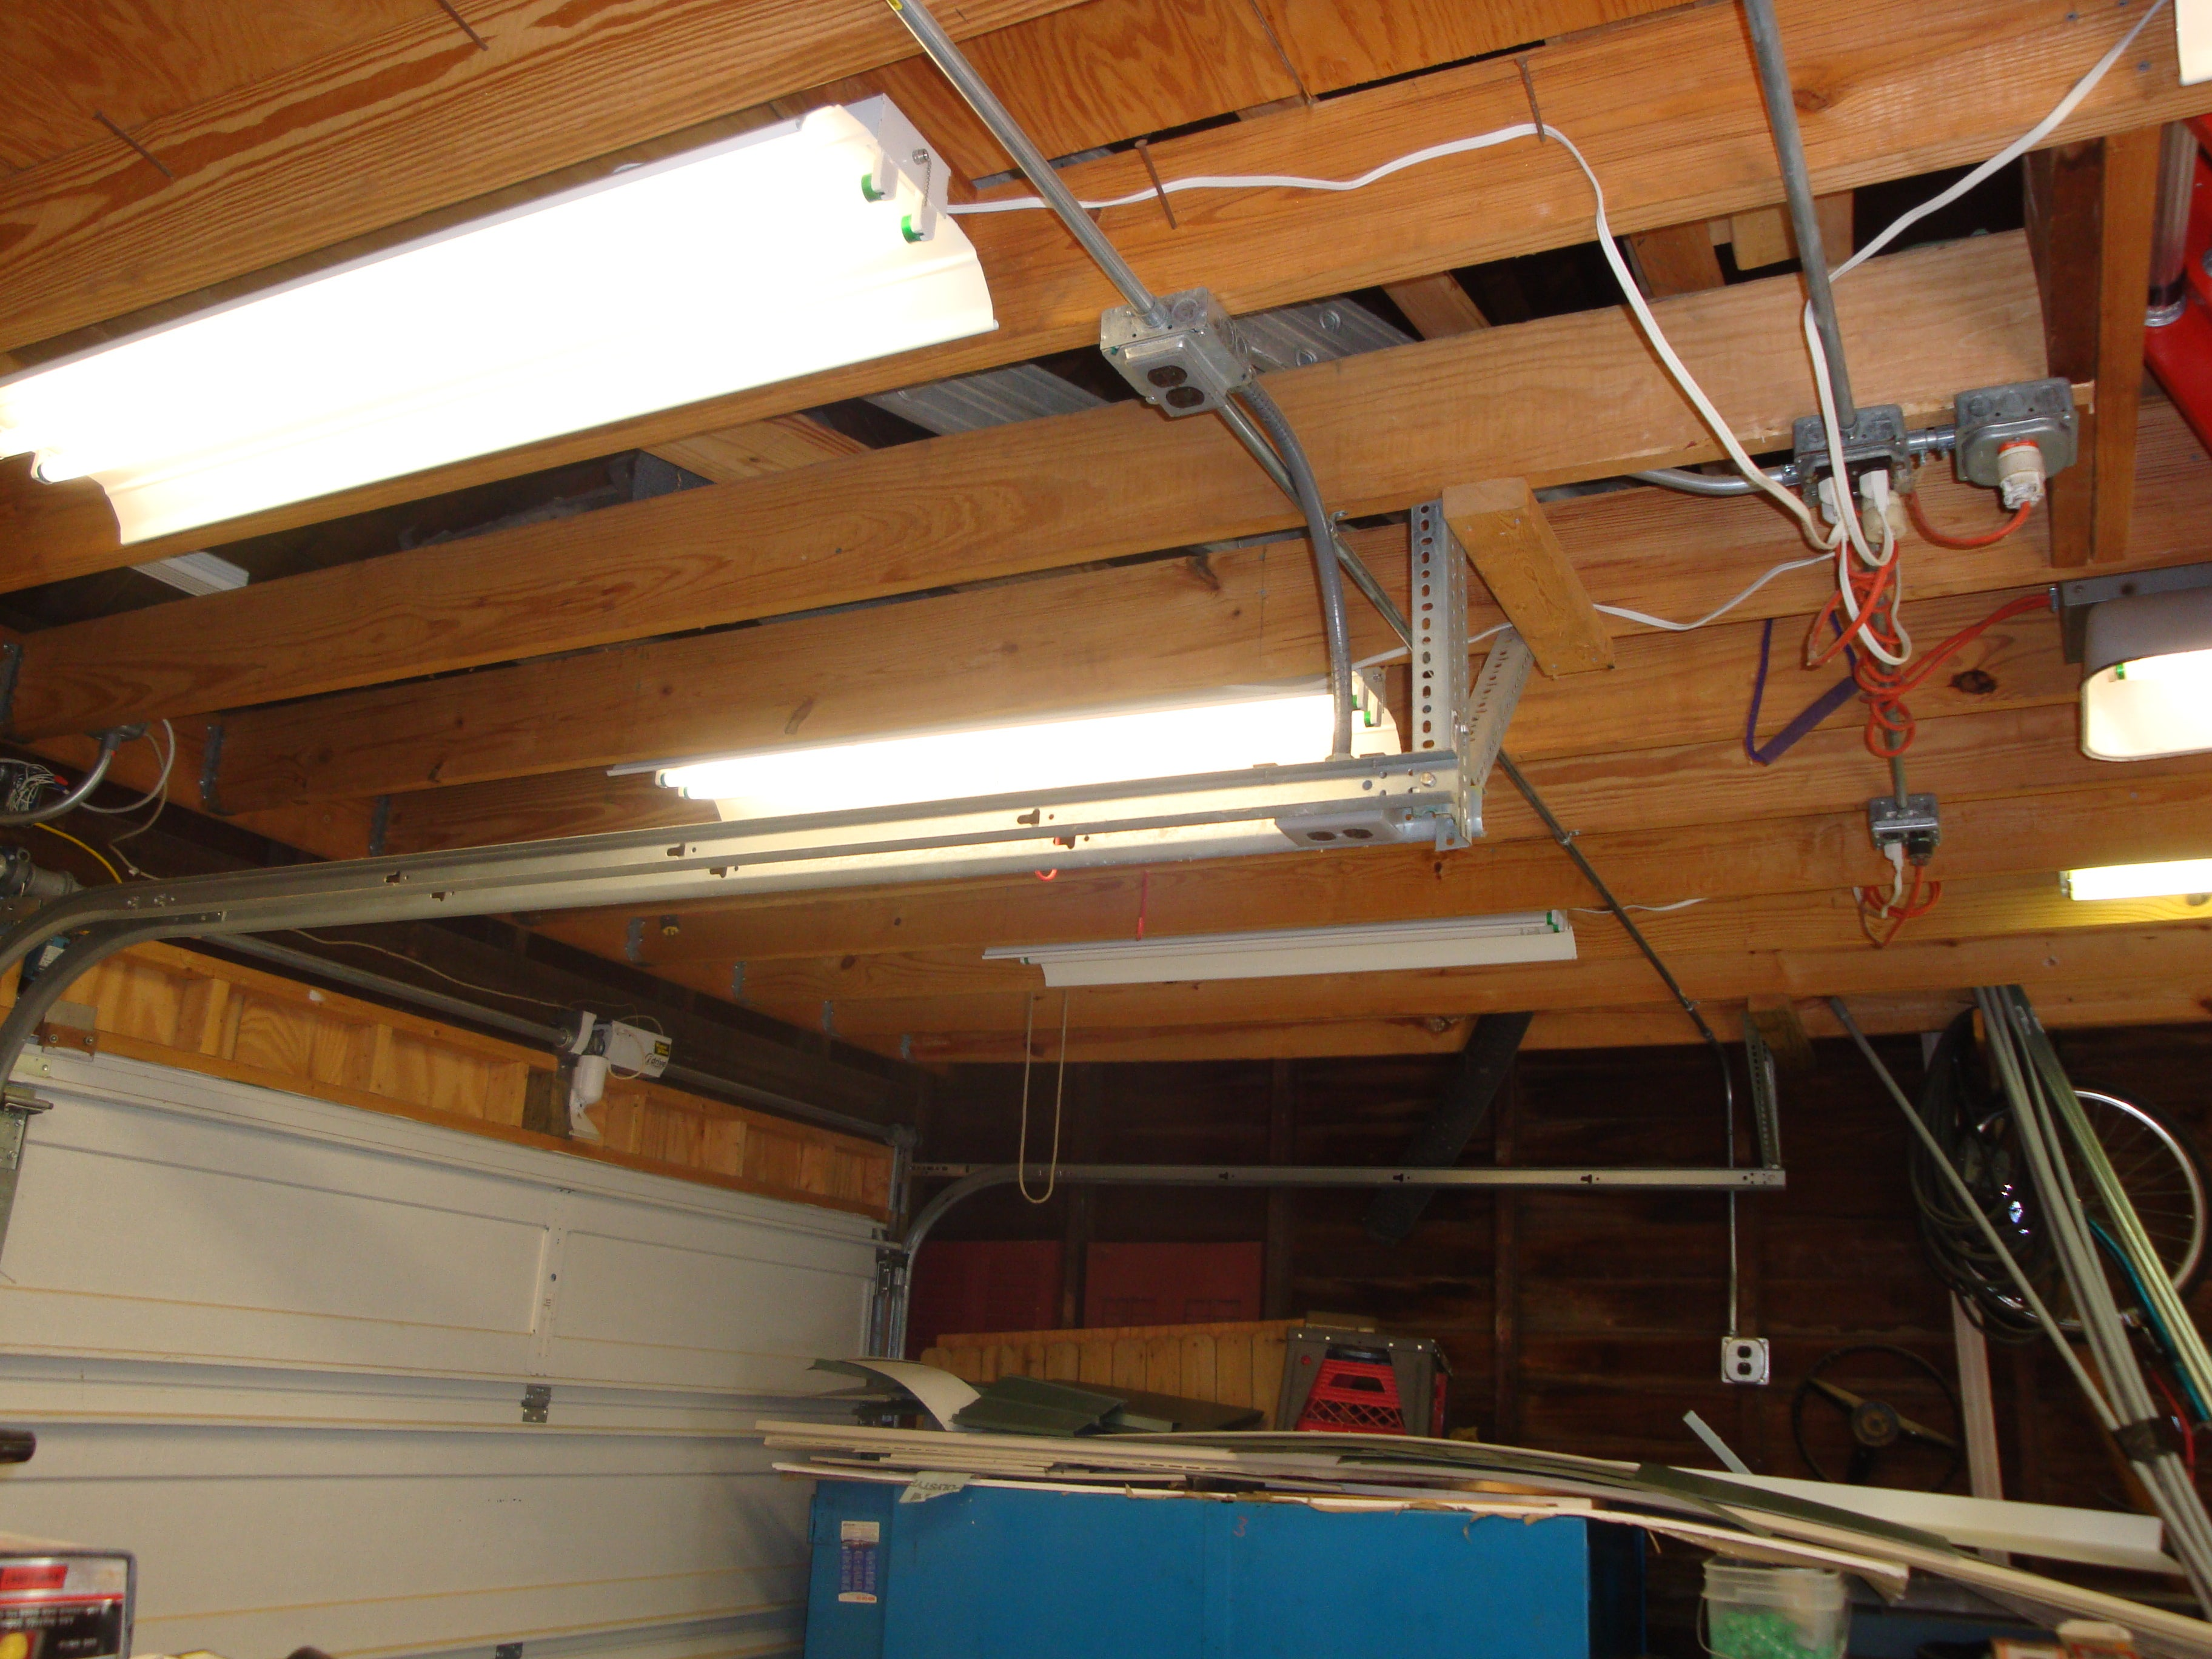 Fluorescent Shop Light Repair : 9 Steps (with Pictures) - InstructablesInstructables